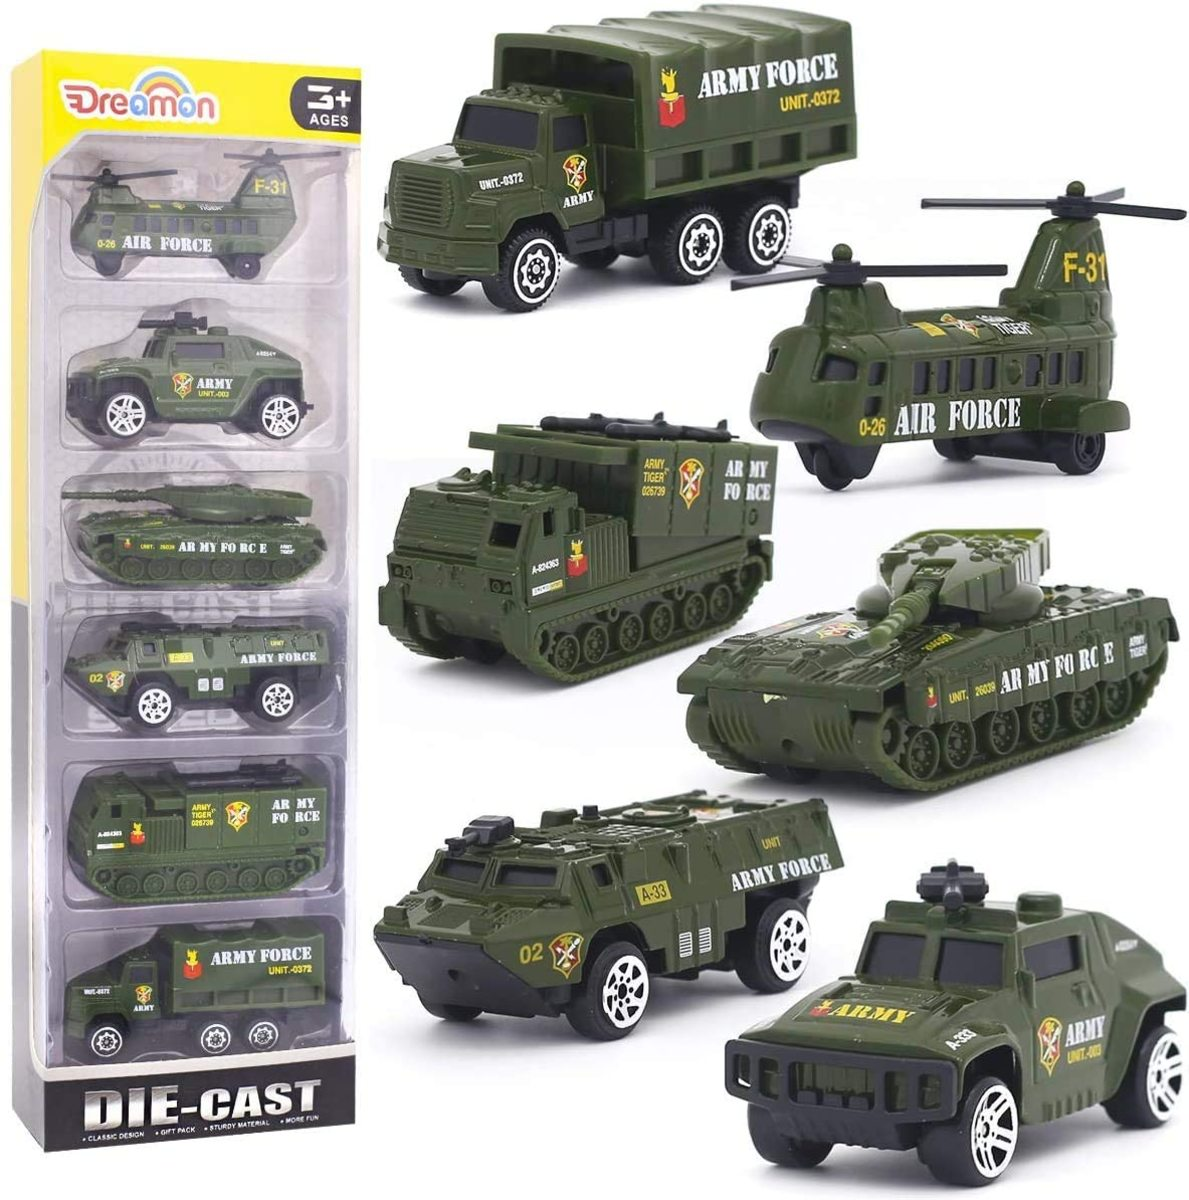 6-pack of roughly 1/64-scale vehicles for $14.99